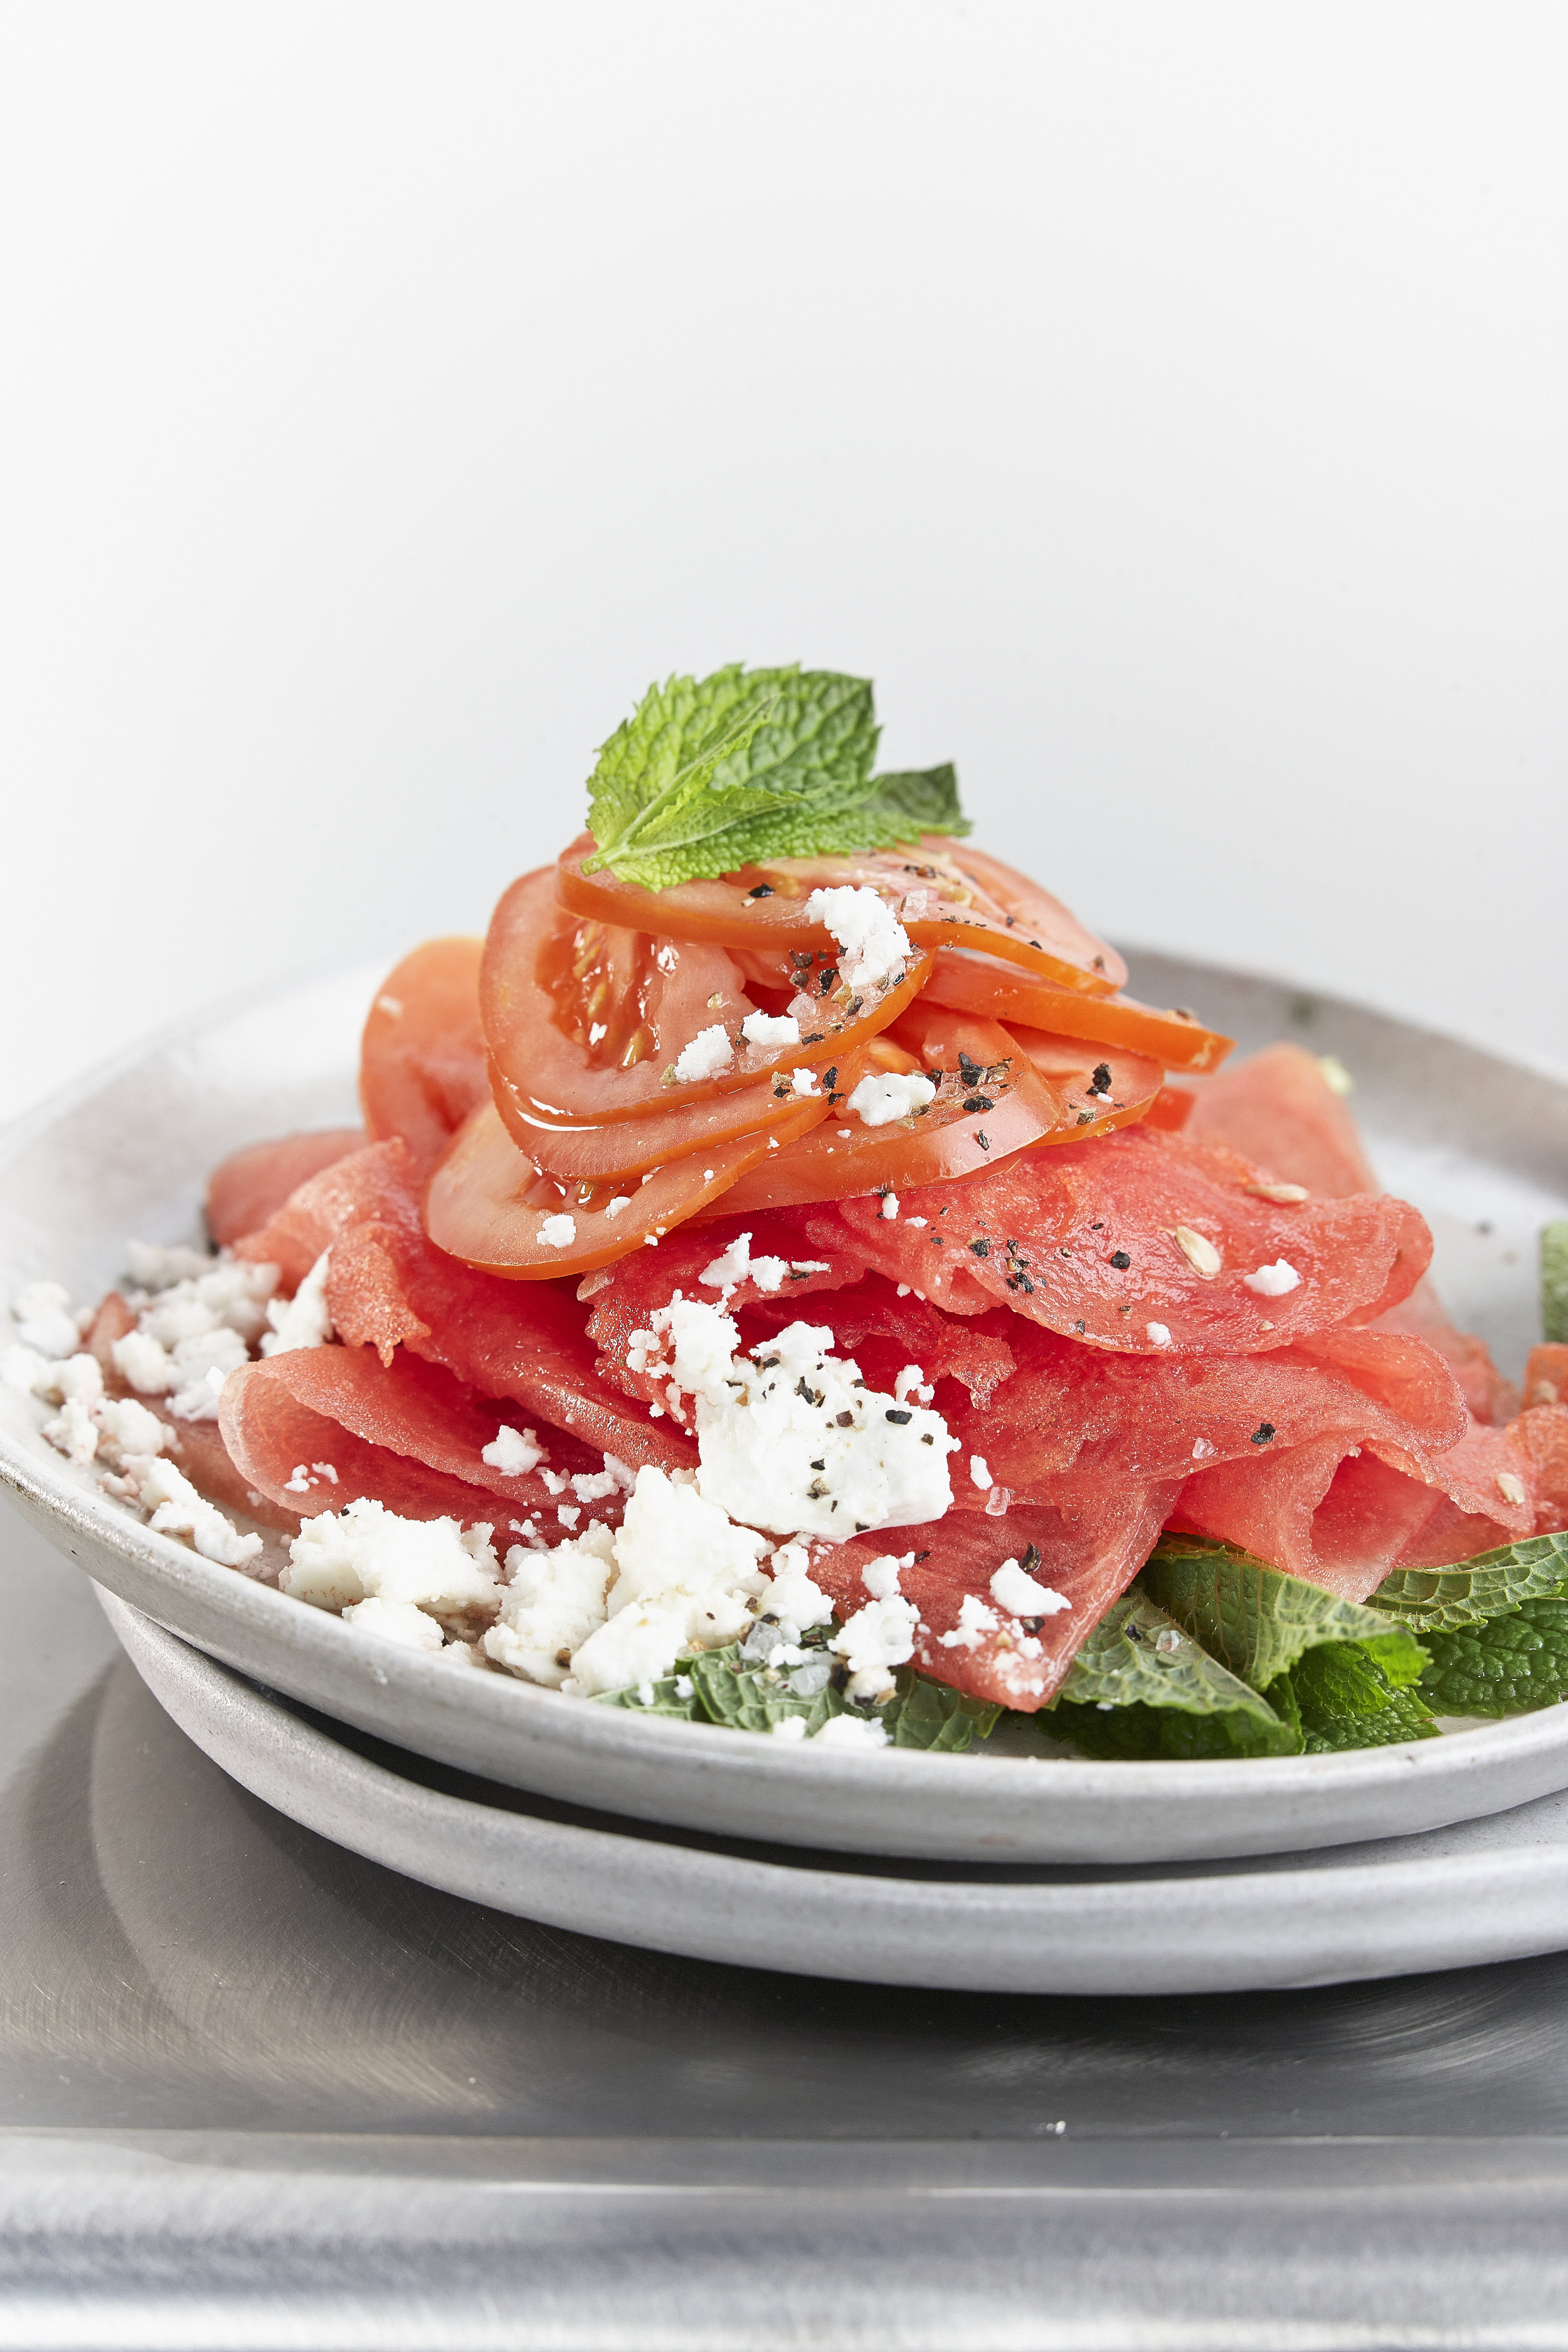 Tomato watermelon salad with feta and mint.jpg